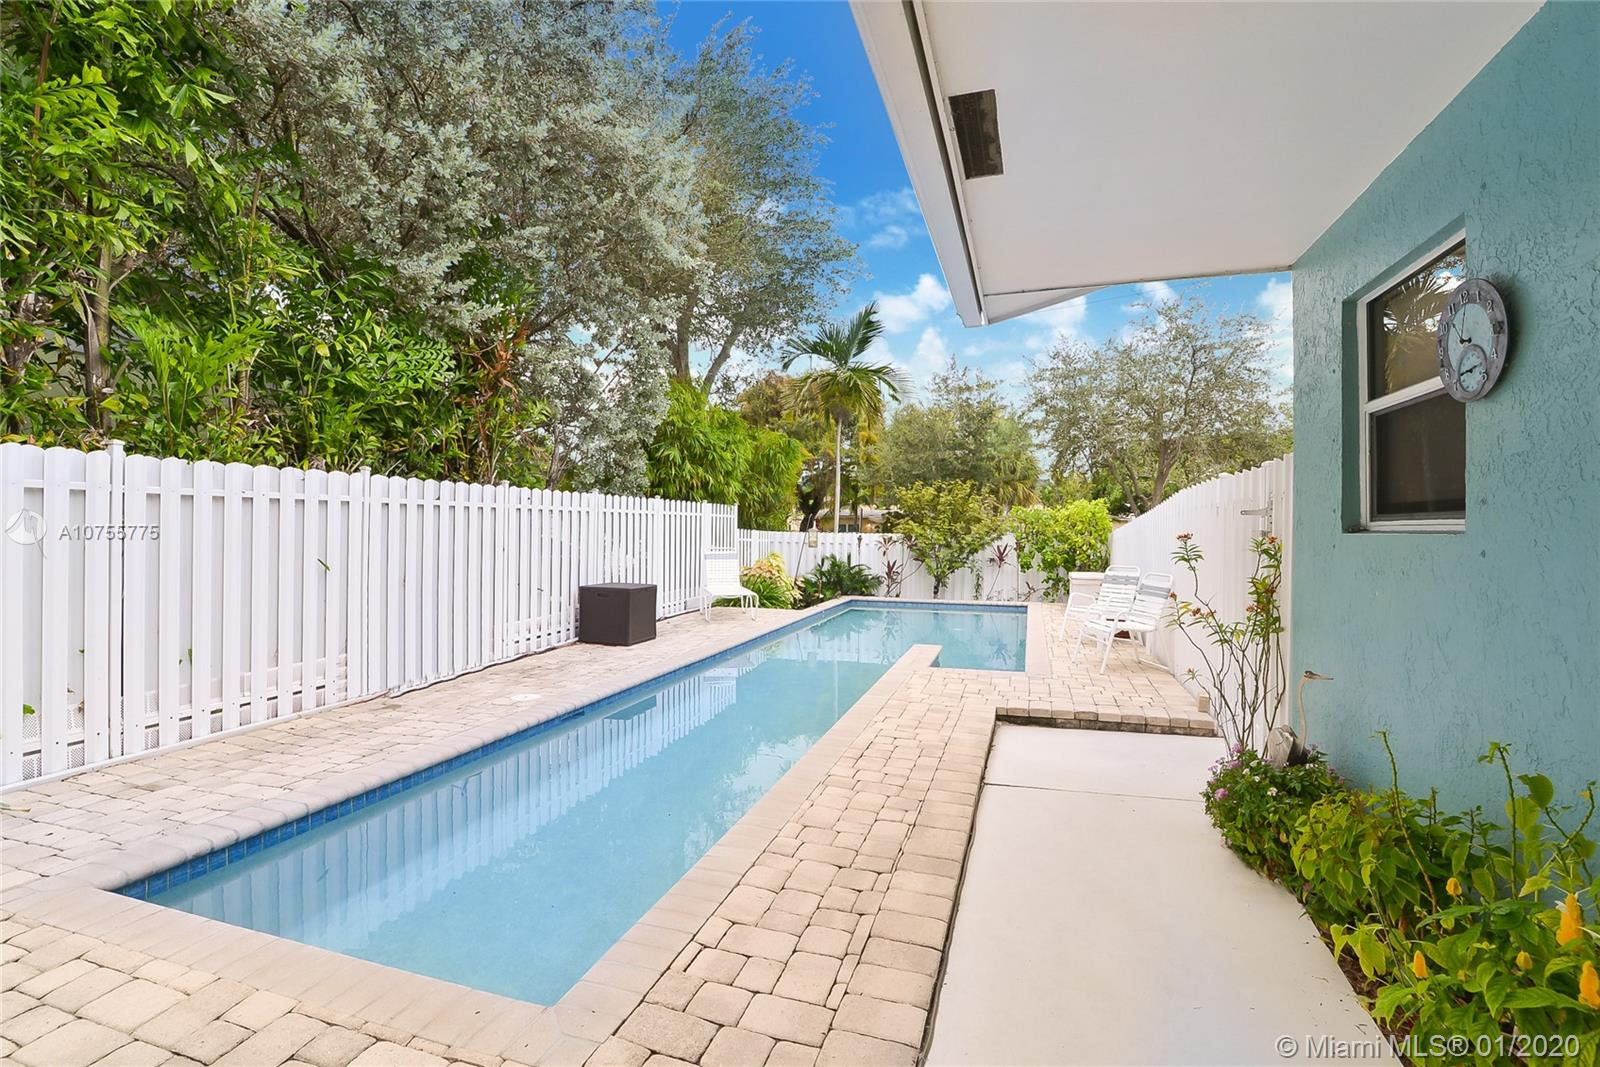 Incredible opportunity to own a Beautiful waterfront Pool Home with more than 1700 sq ft -Located in the Heart of Fort Lauderdale. Featuring 3 Bedrooms, 2 1/2 Baths.  This multi-level residency boast many upgrades, including:  Impact Windows & Doors, featuring Dock-age with Power + Water Source; Tile Flooring and Carpeting in Bedrooms,  remodel Kitchen and Bathrooms. Easy access to Ocean. Expansive Terrace with Water  Views! Comfortable  Master Suite,  Walk-In Closet. 1- Oversize Car Garage plus additional Parking space. Completely Fenced and equipped with a wireless security system. Townhouse is not part of an HOA and has no fees.  Close to Shopping and Restaurants.